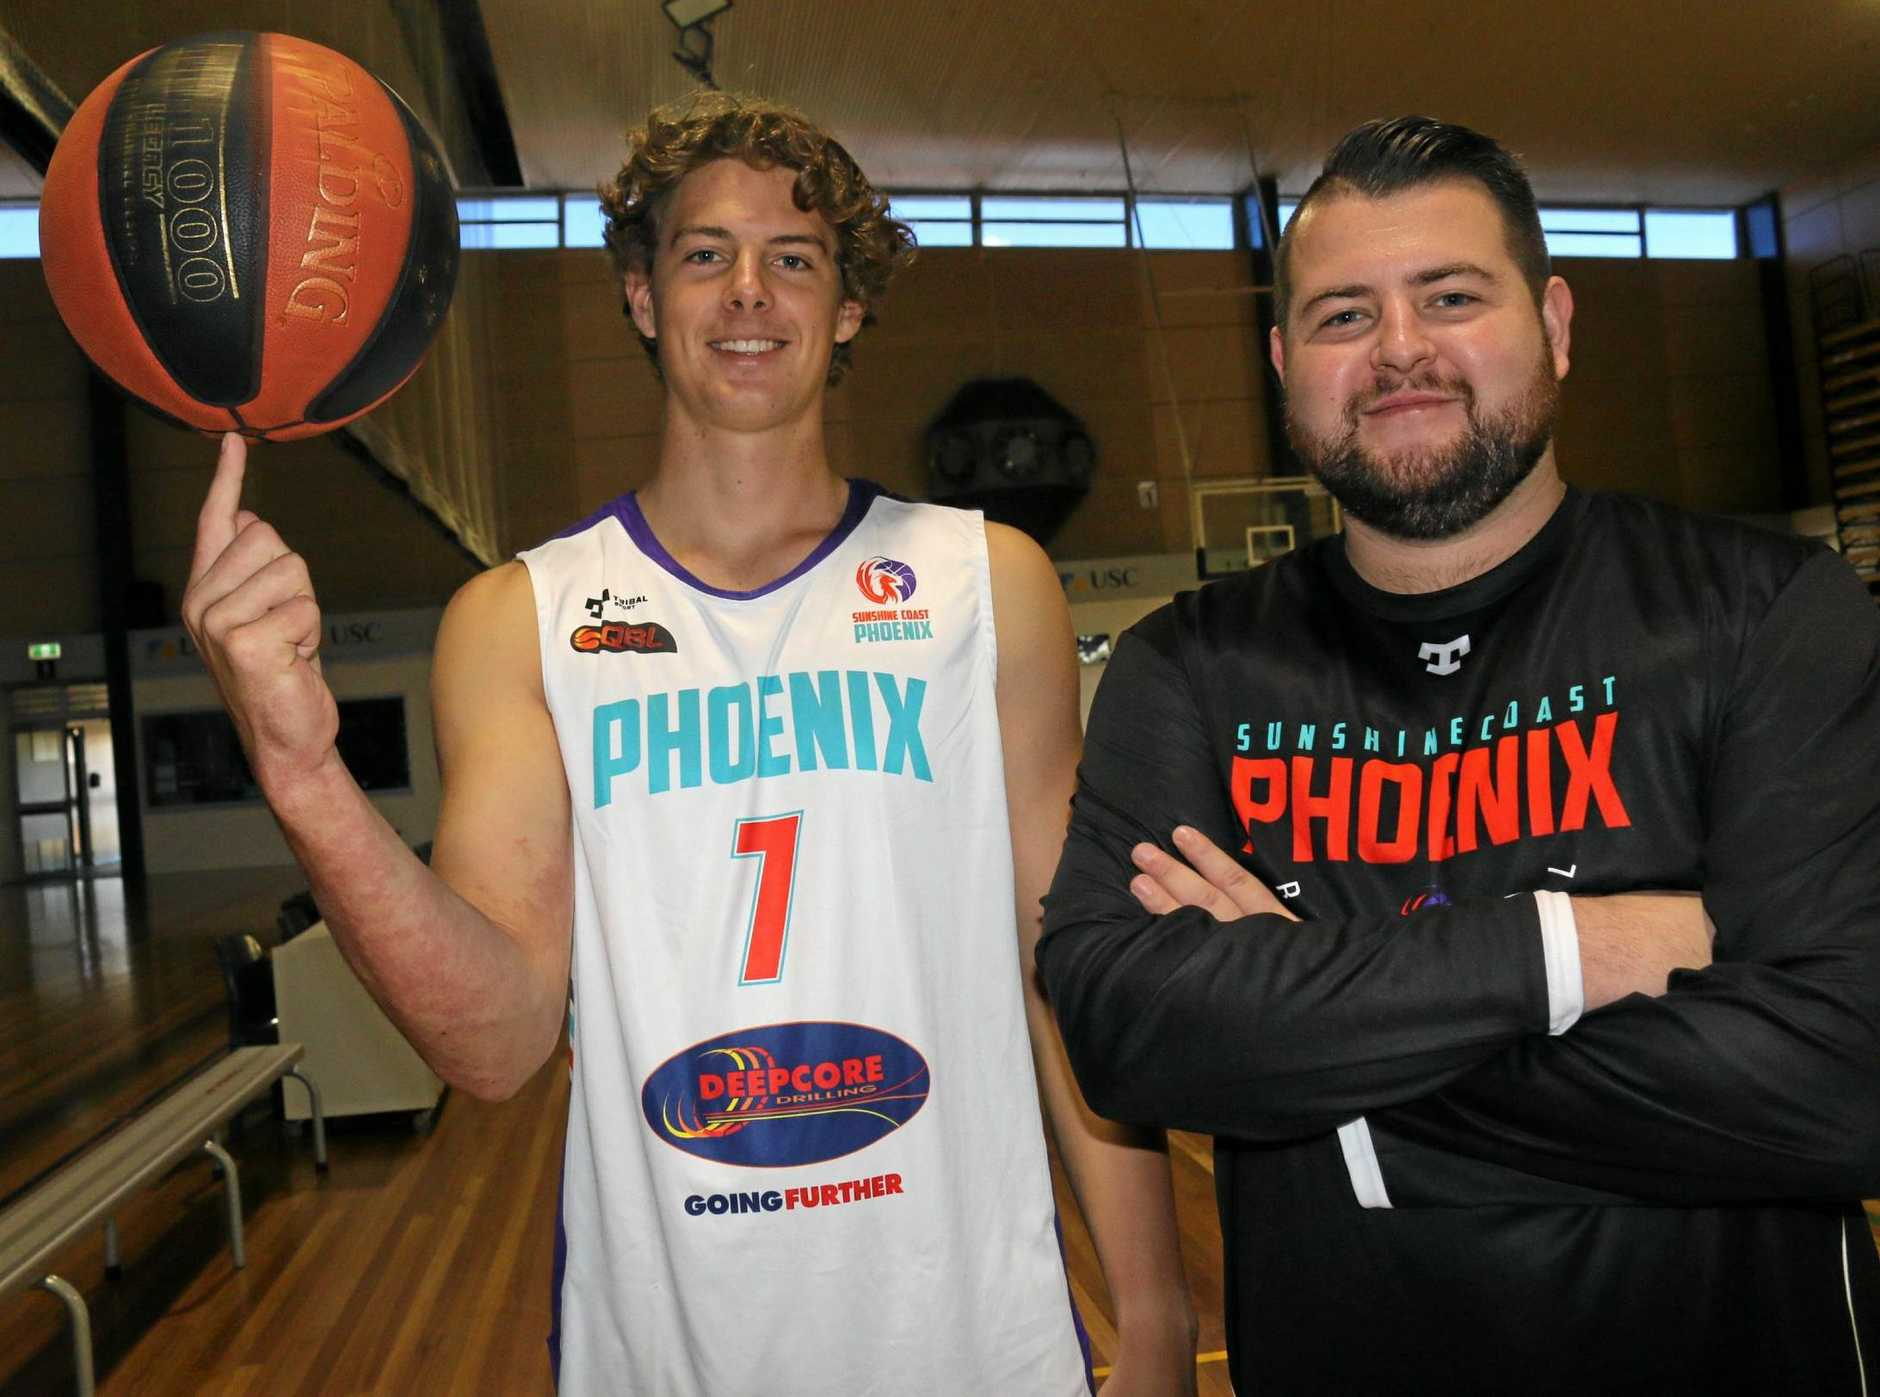 GAME ON: Sunshine Coast Phoenix player Tom Fullarton and coach Brayden Heslehurst are ready for the season-opening clash with USC Rip City on Friday.